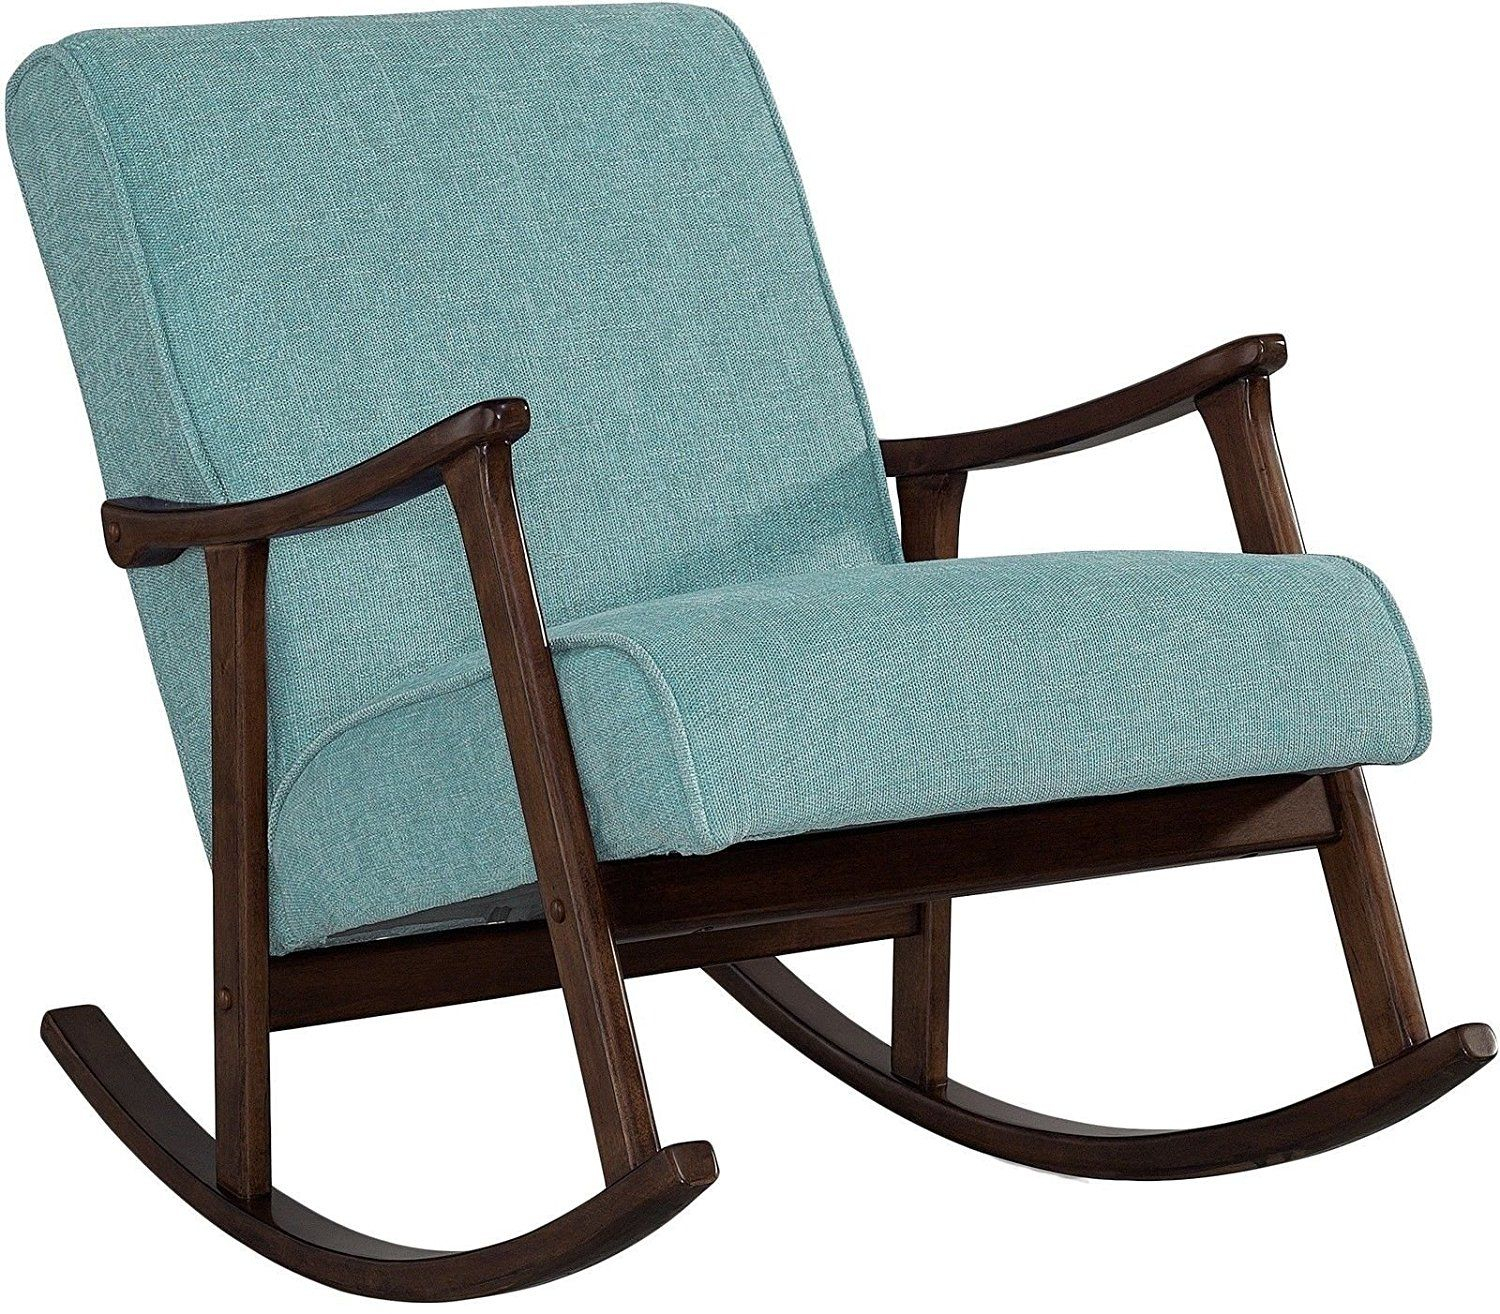 Amazonsmile: Modern Rocking Chair Nursery Baby Retro Aqua Within Granite Grey Fabric Mid Century Wooden Rocking Chairs (#1 of 20)